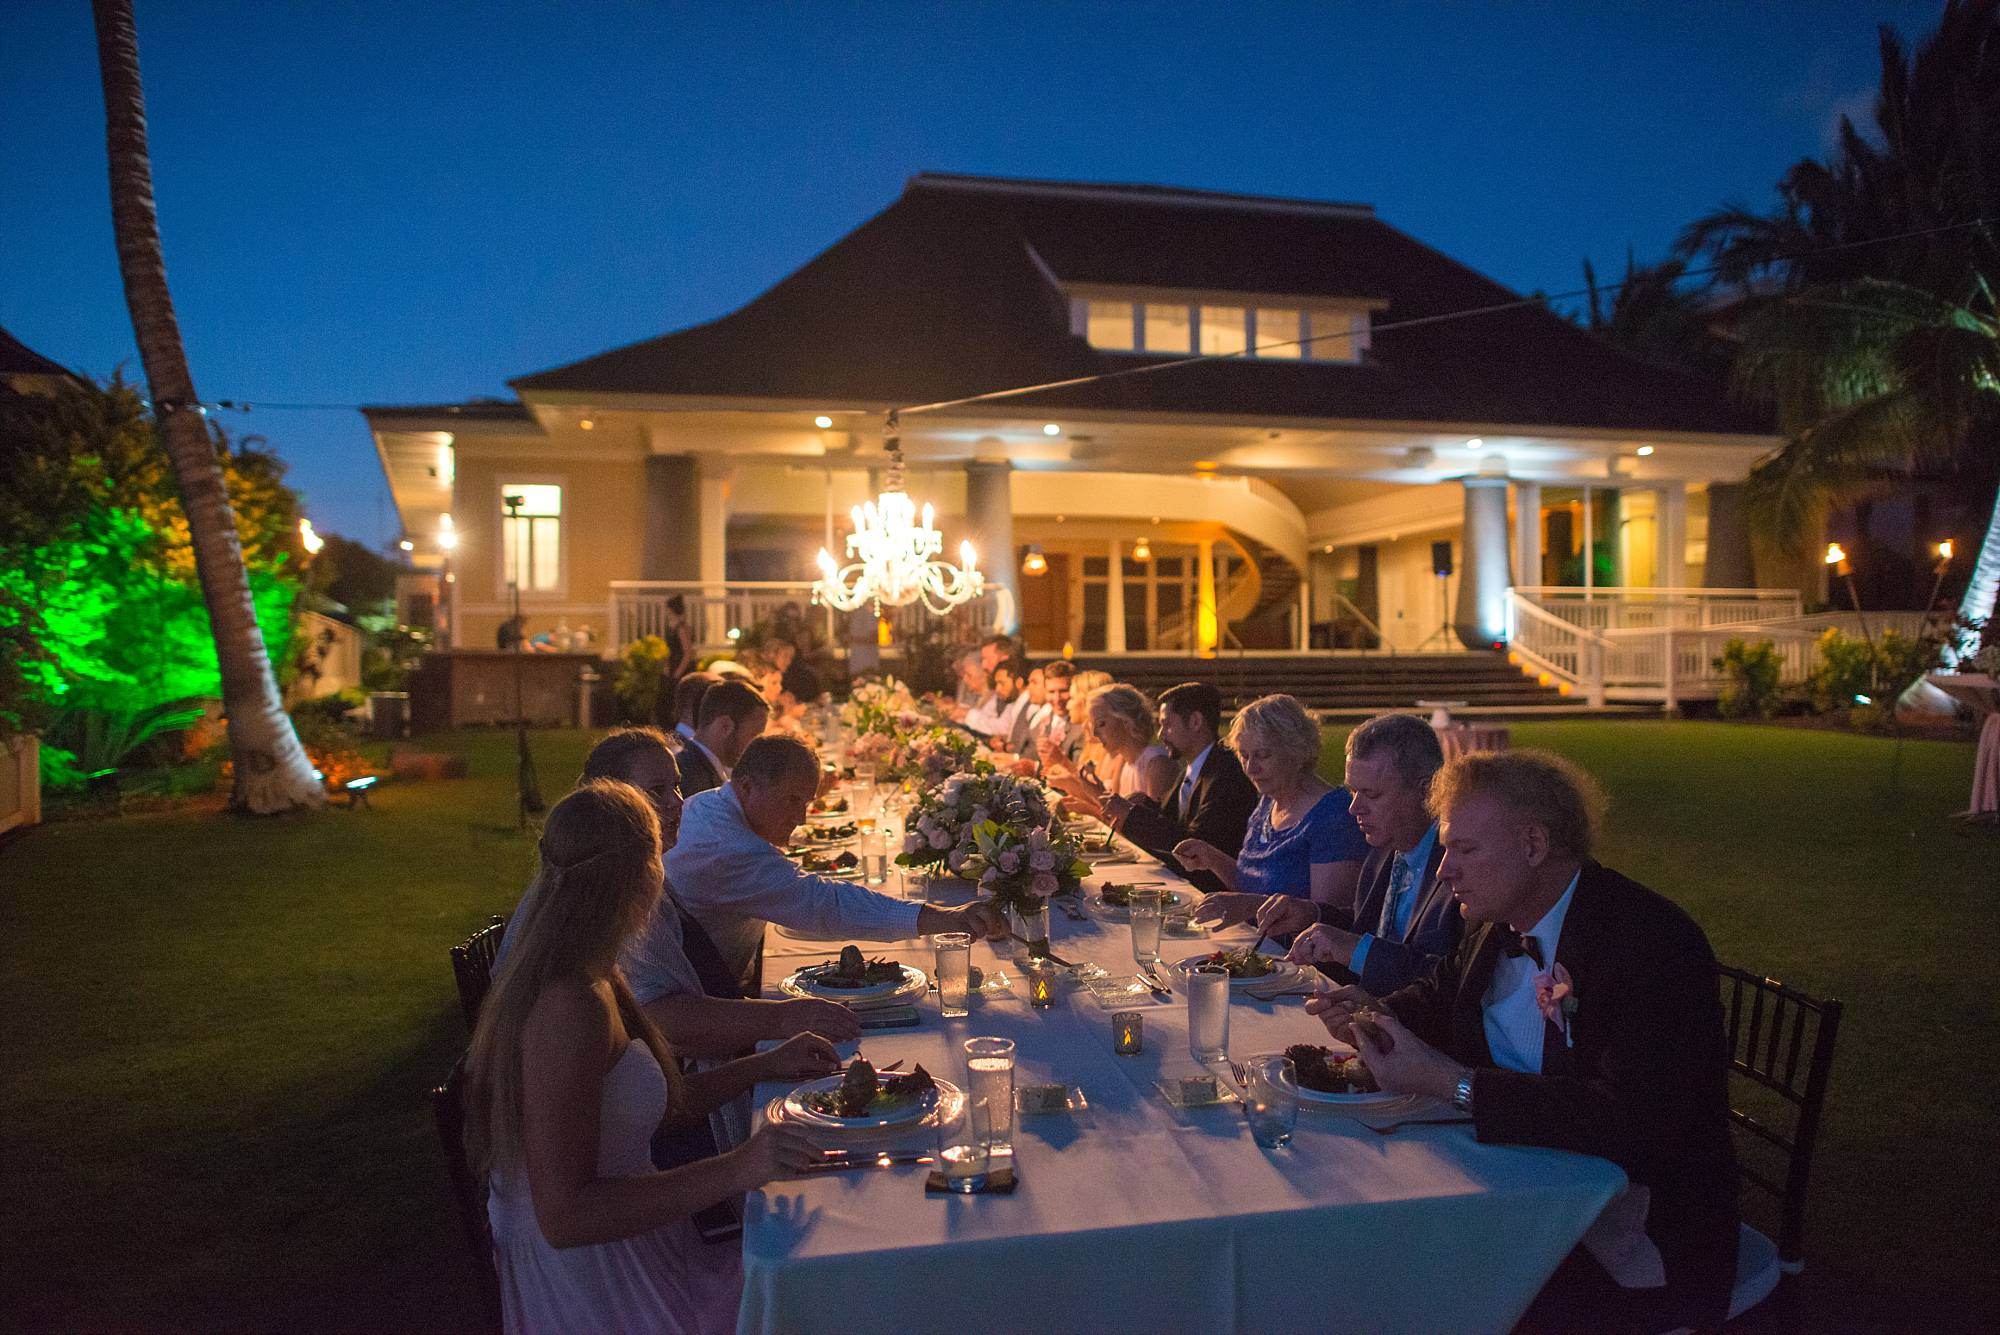 all wedding guests sitting together at beautiful farm table eating and drinking during reception, Sugar Beach Events house in distance